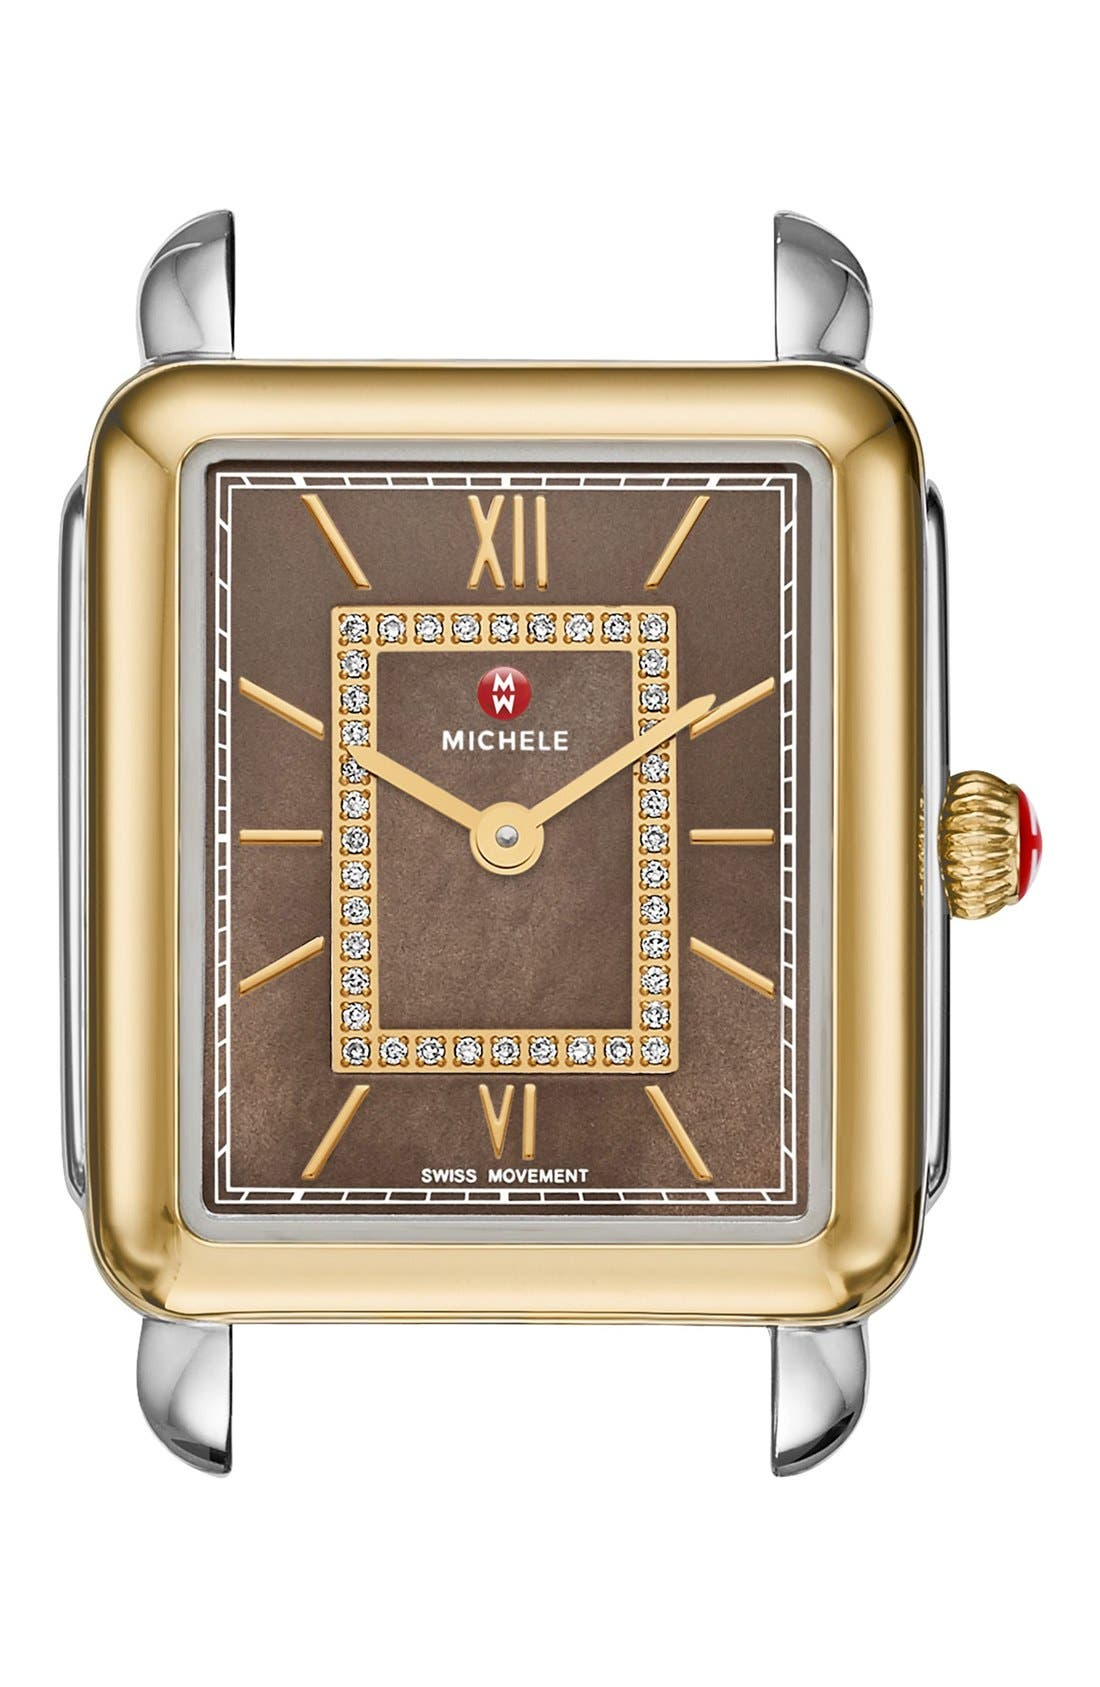 Alternate Image 1 Selected - MICHELE Deco II Diamond Dial Watch Case, 26mm x 28mm